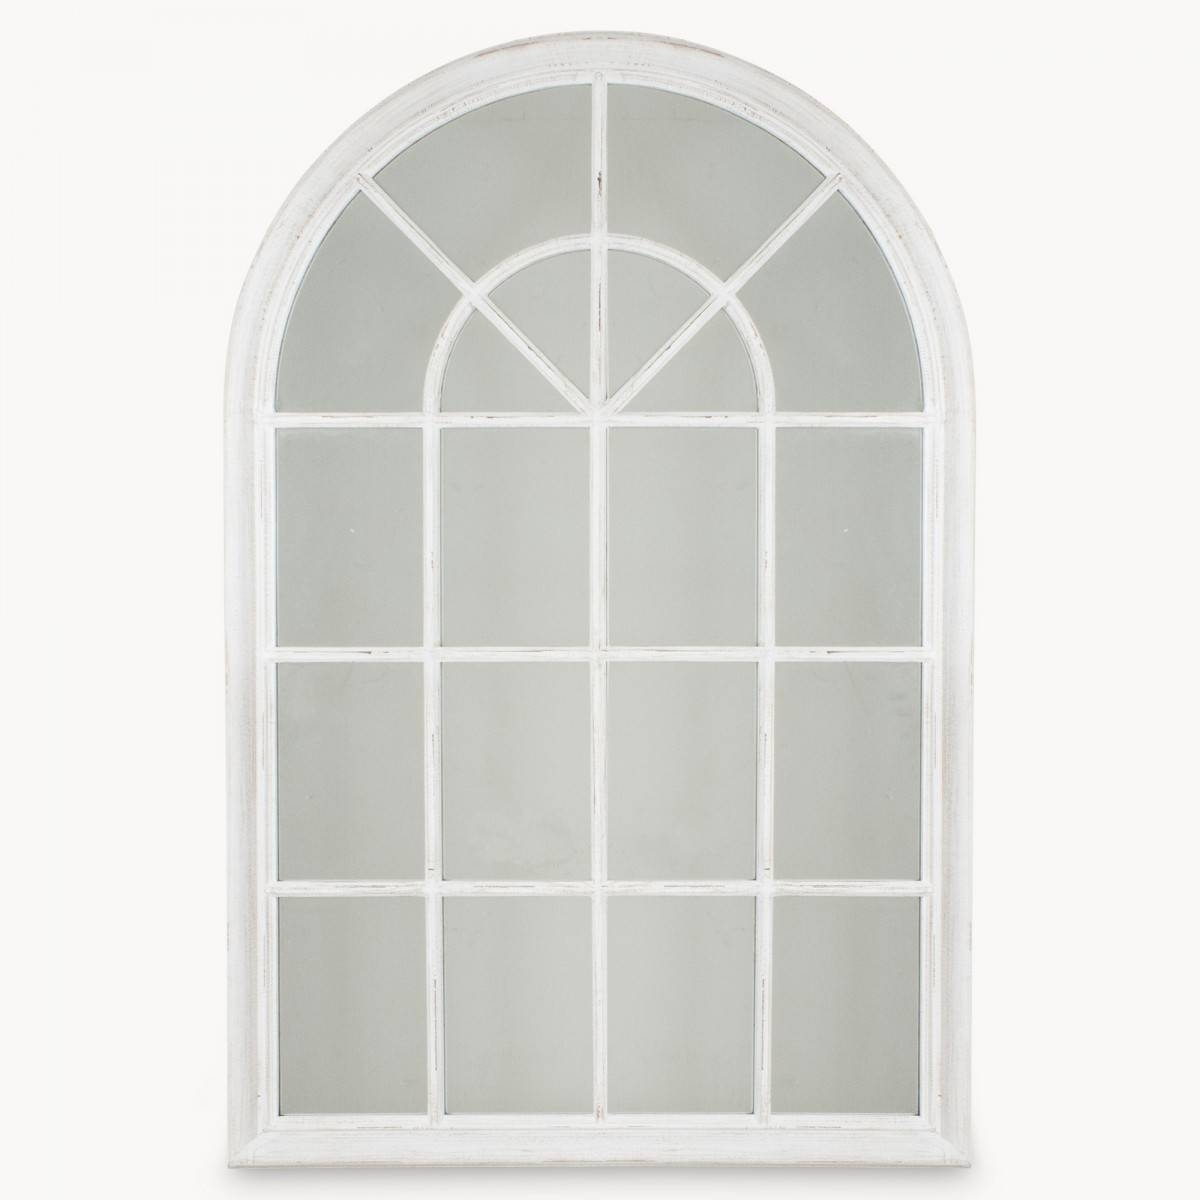 Ideas Design For Arched Window Mirror #19755 for White Arched Window Mirrors (Image 17 of 25)